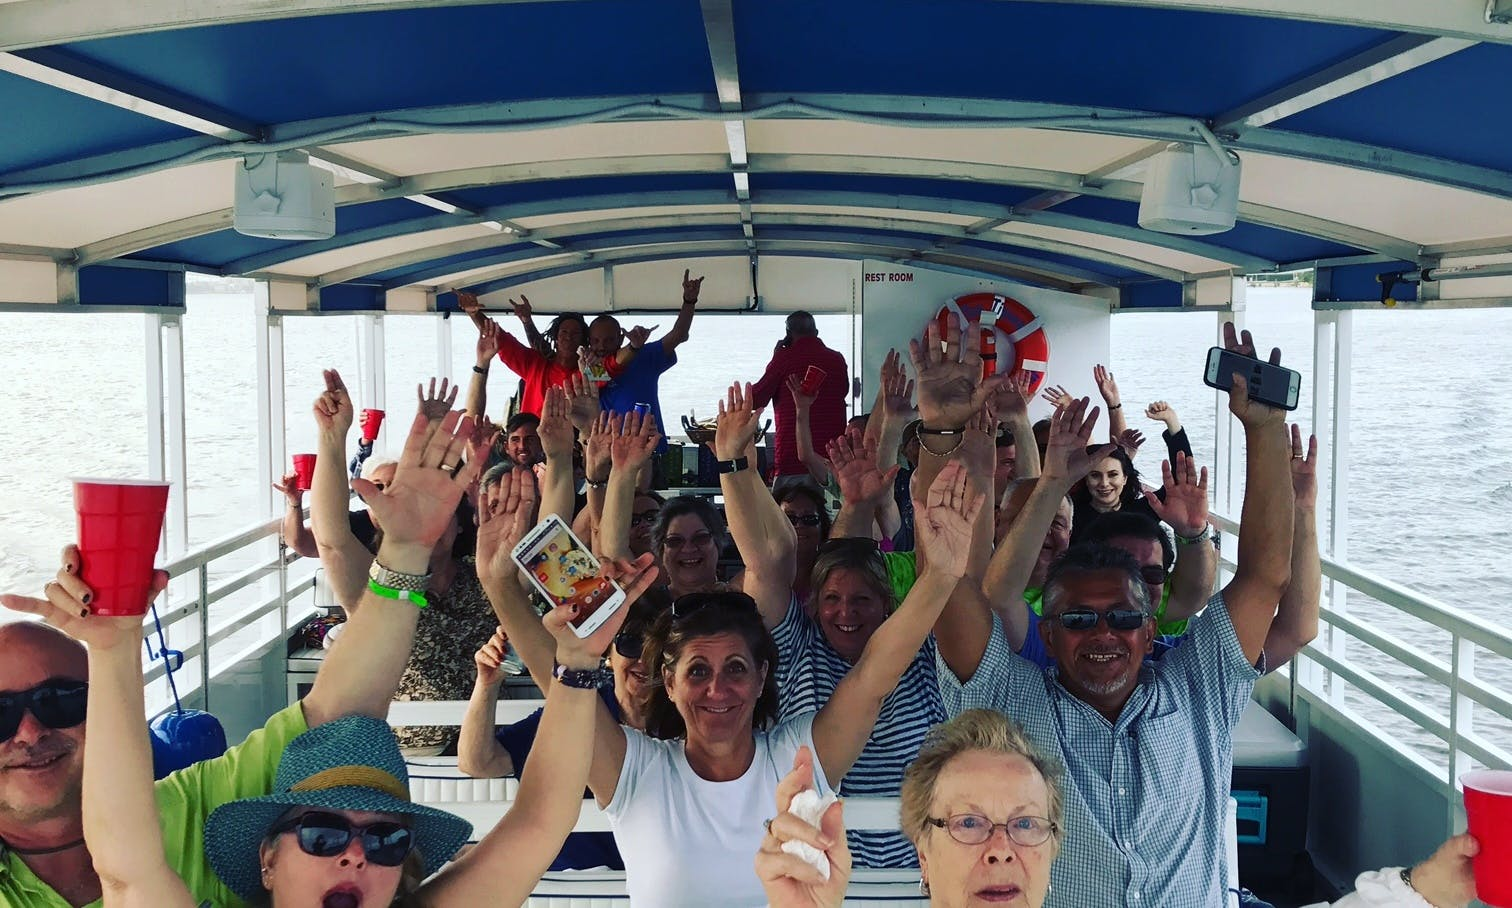 Catamaran Pontoon Charter Boat for Parties, Weddings, Corporate Events in West Palm Beach, Florida